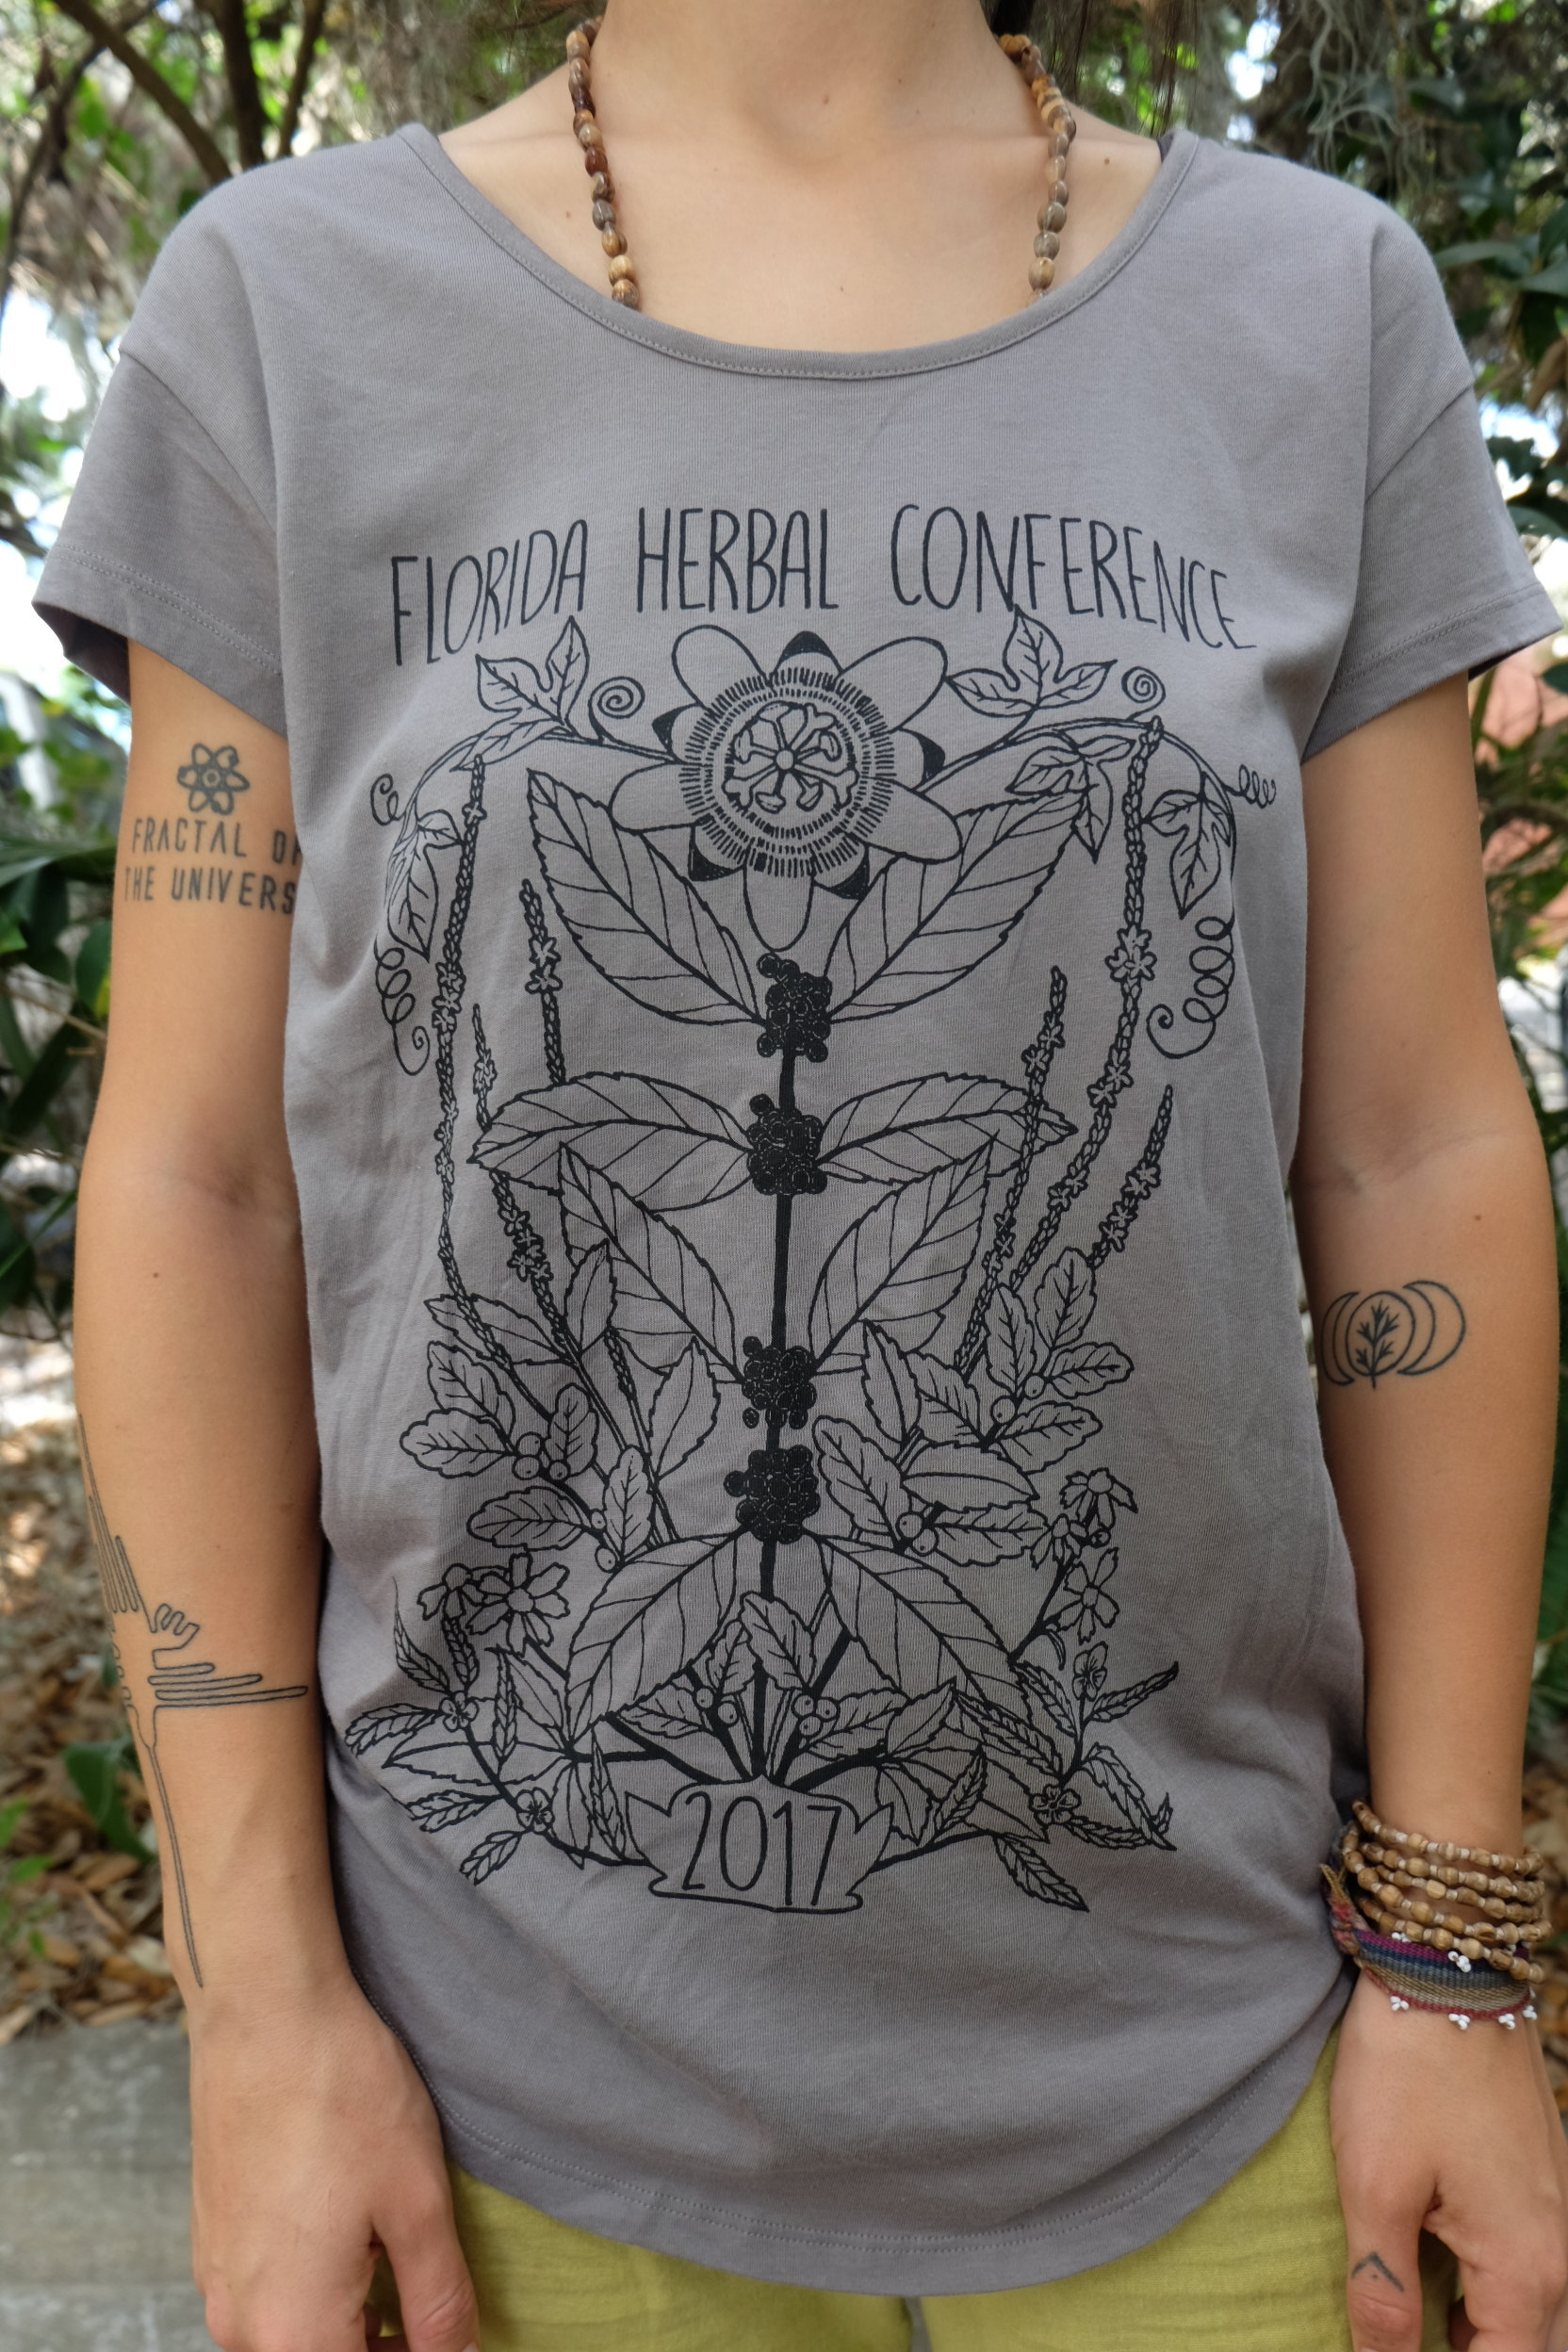 2017 Florida Herbal Conference Short Sleeved Tee 00005